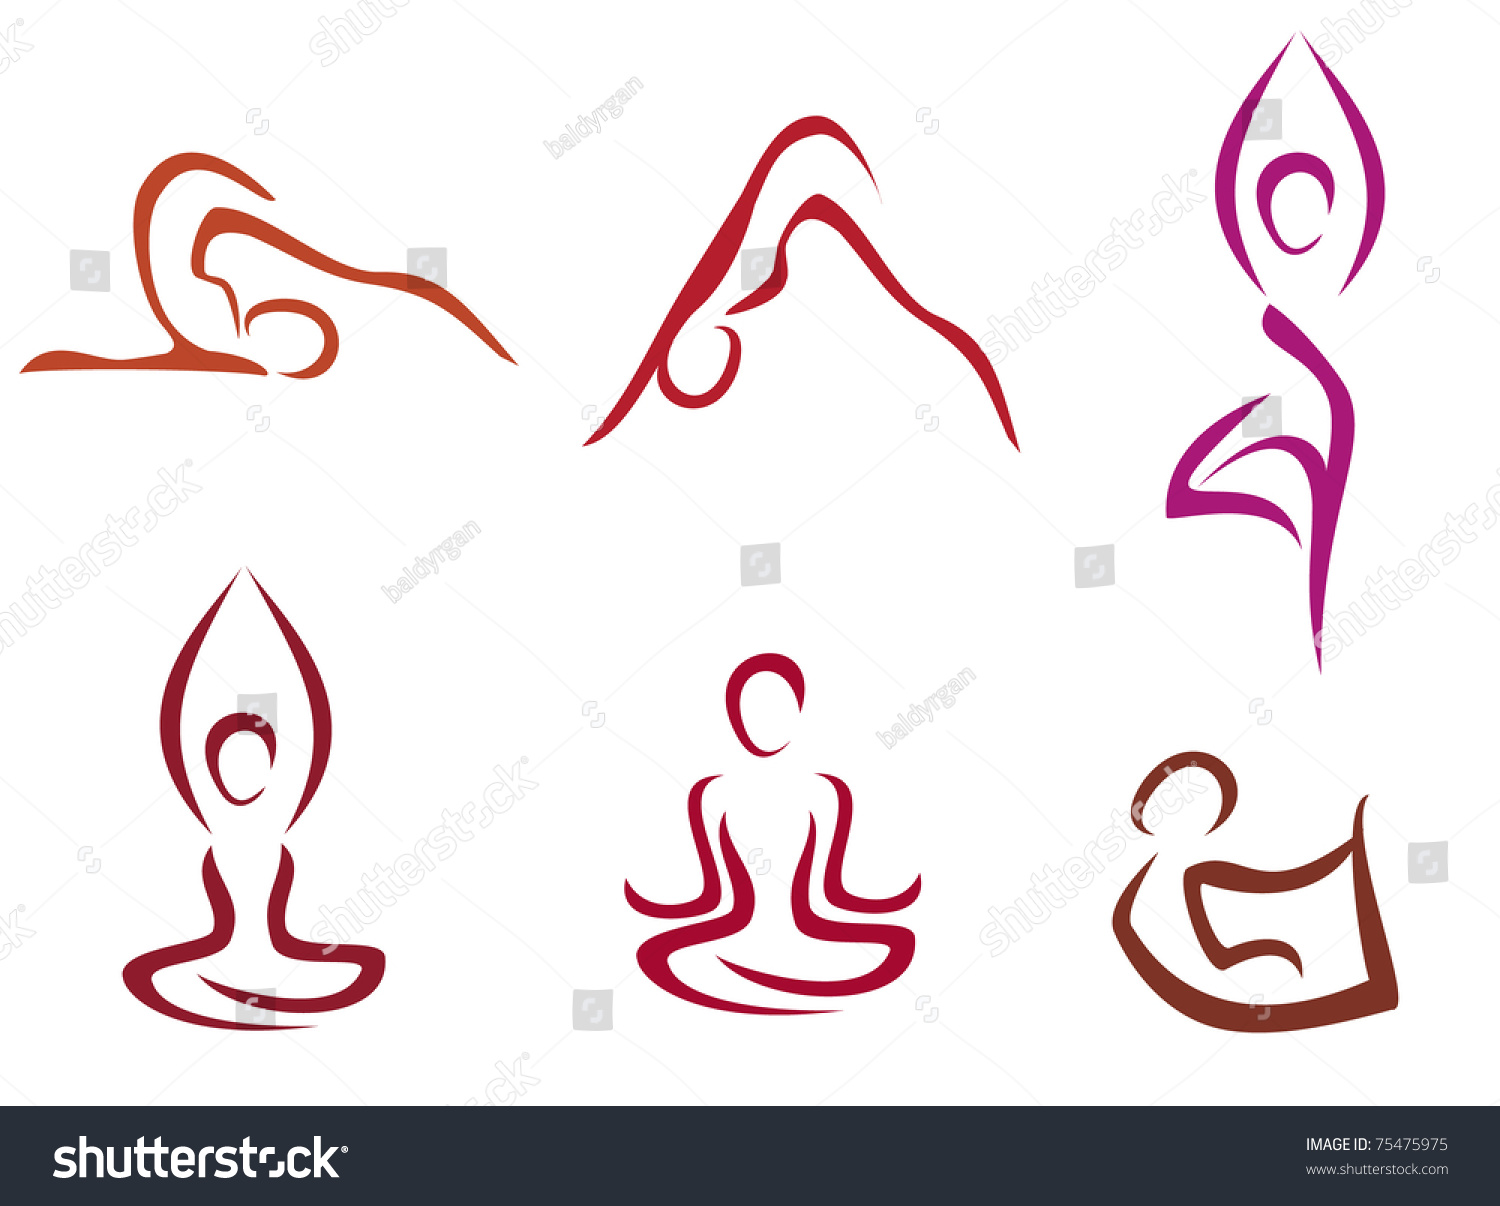 Line Drawing Yoga Pose : Yoga poses symbols set in simple lines stylized vector